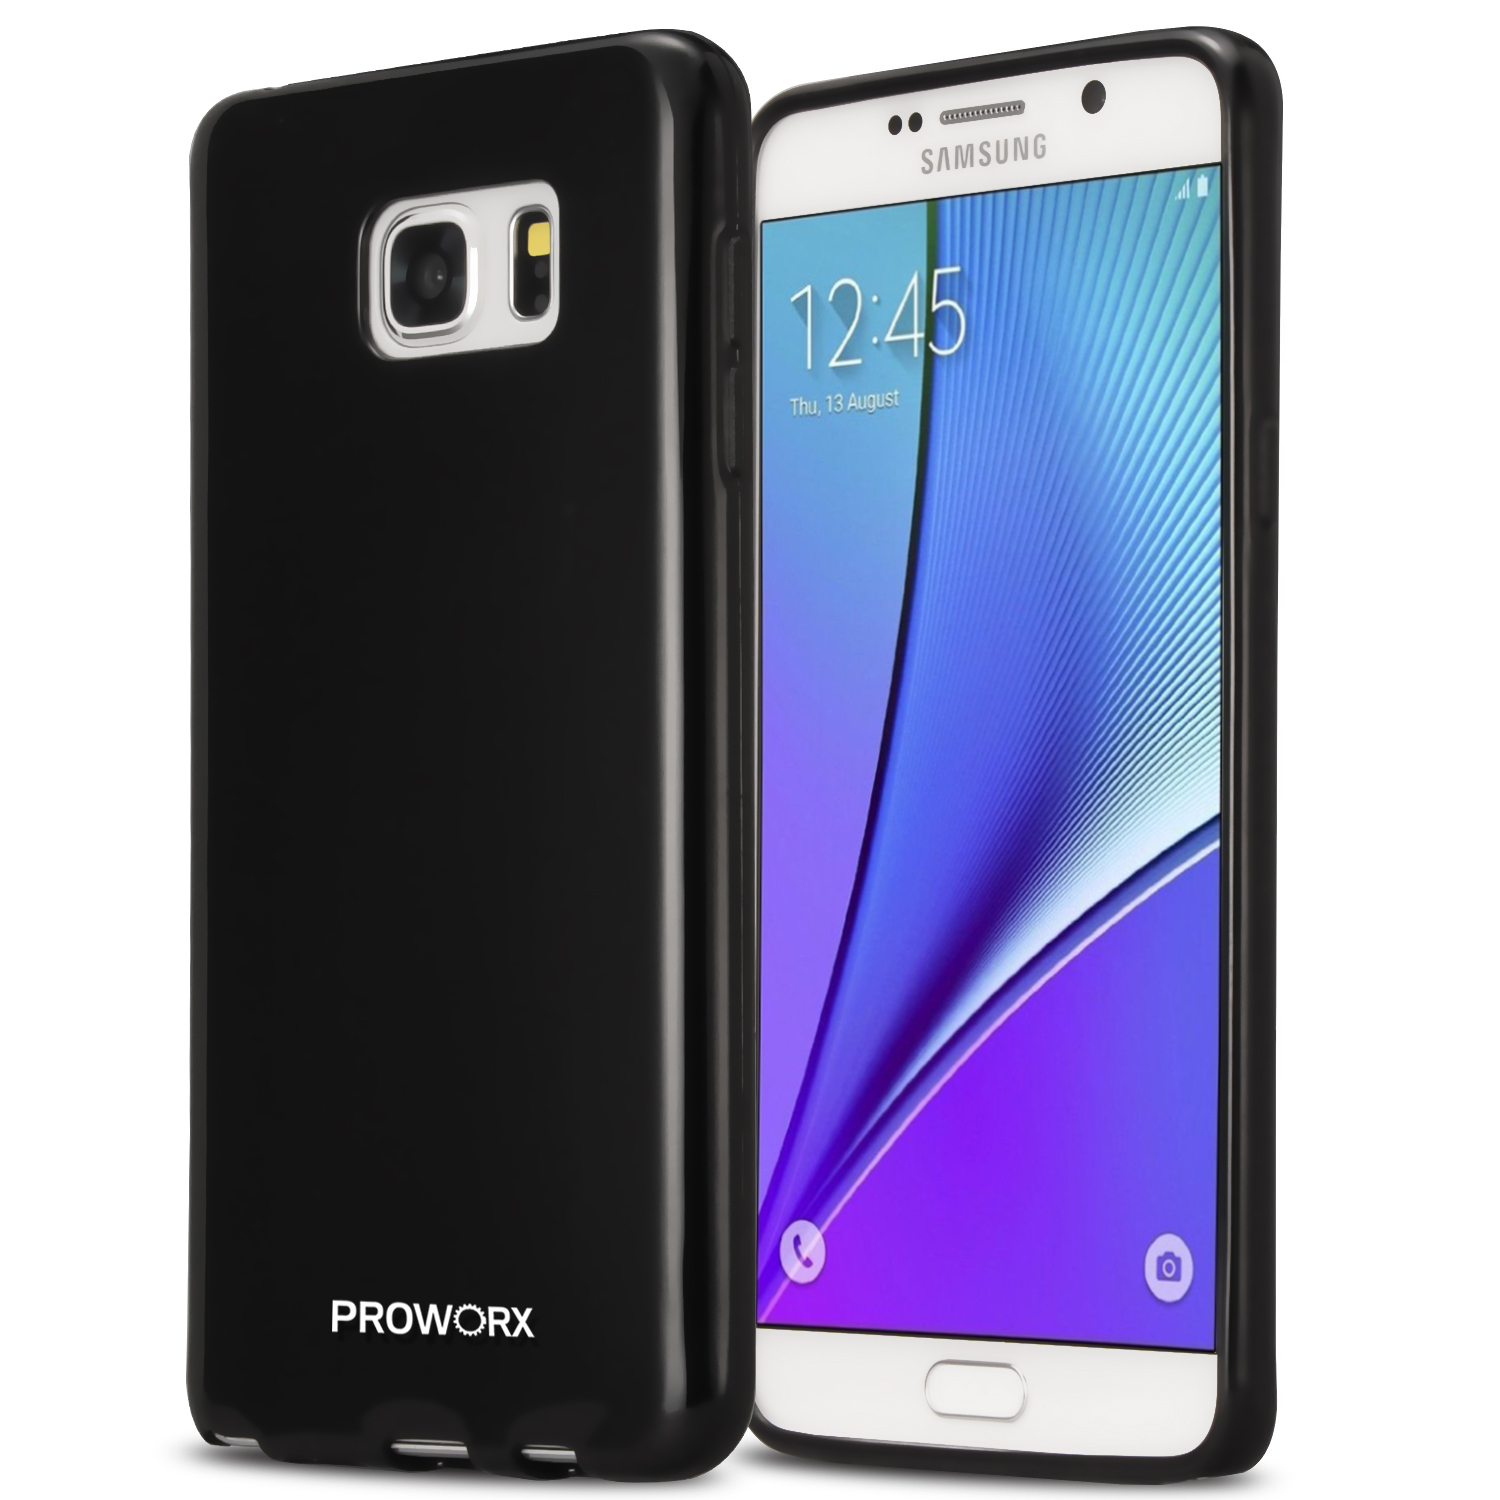 Samsung Galaxy Note 5 Black ProWorx Ultra Slim Thin Scratch Resistant TPU Silicone Case Cover